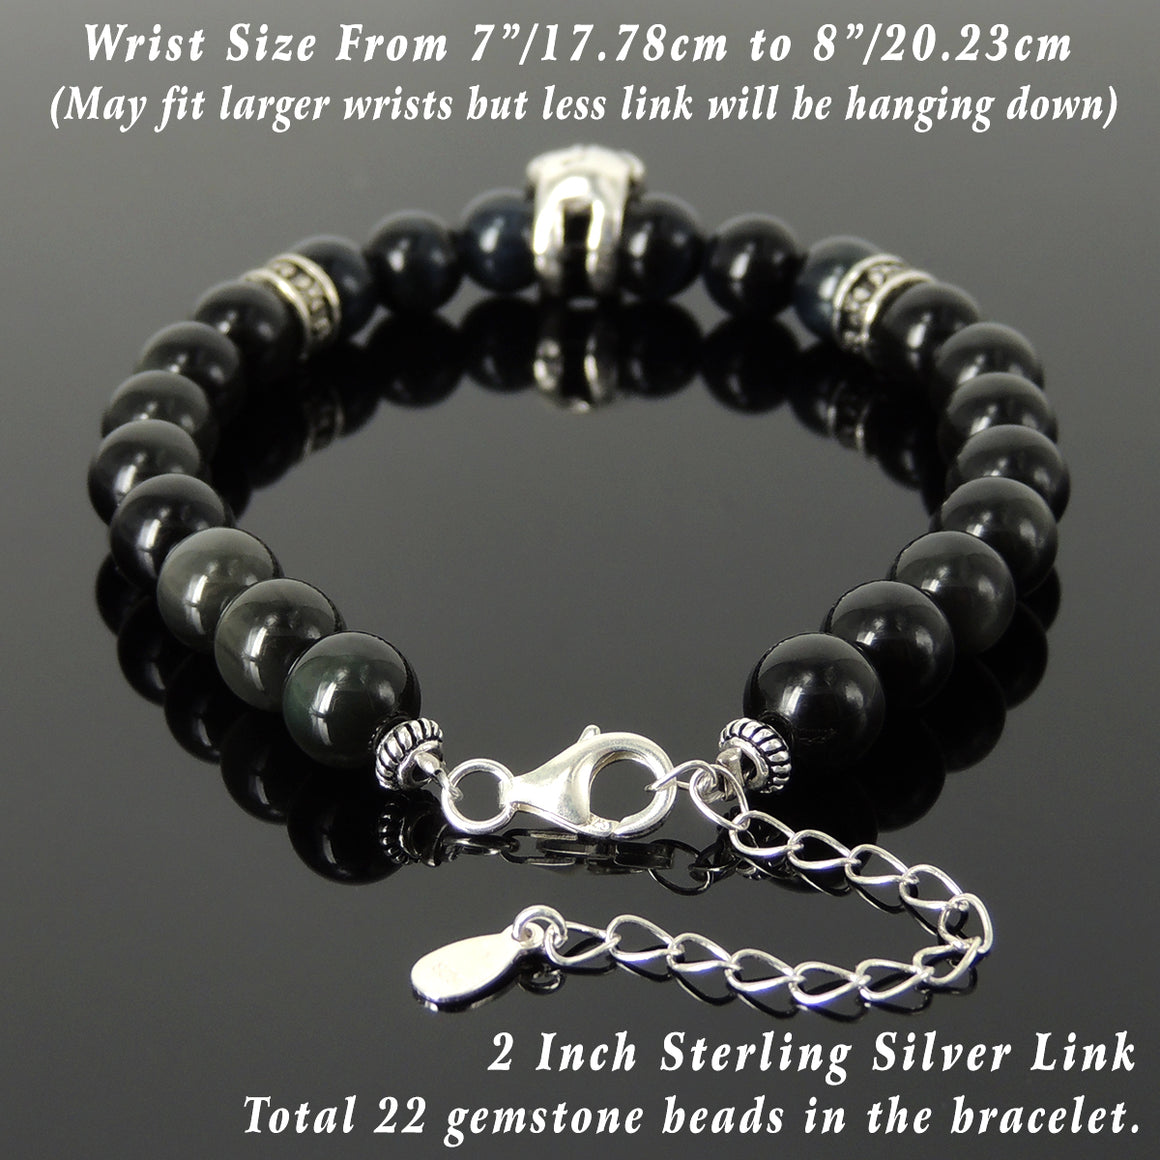 8mm Blue Tiger Eye & Rainbow Black Obsidian Healing Gemstone Bracelet with S925 Sterling Silver Protection Skull, Cross Pattern Spacers, Chain & Clasp - Handmade by Gem & Silver BR1407